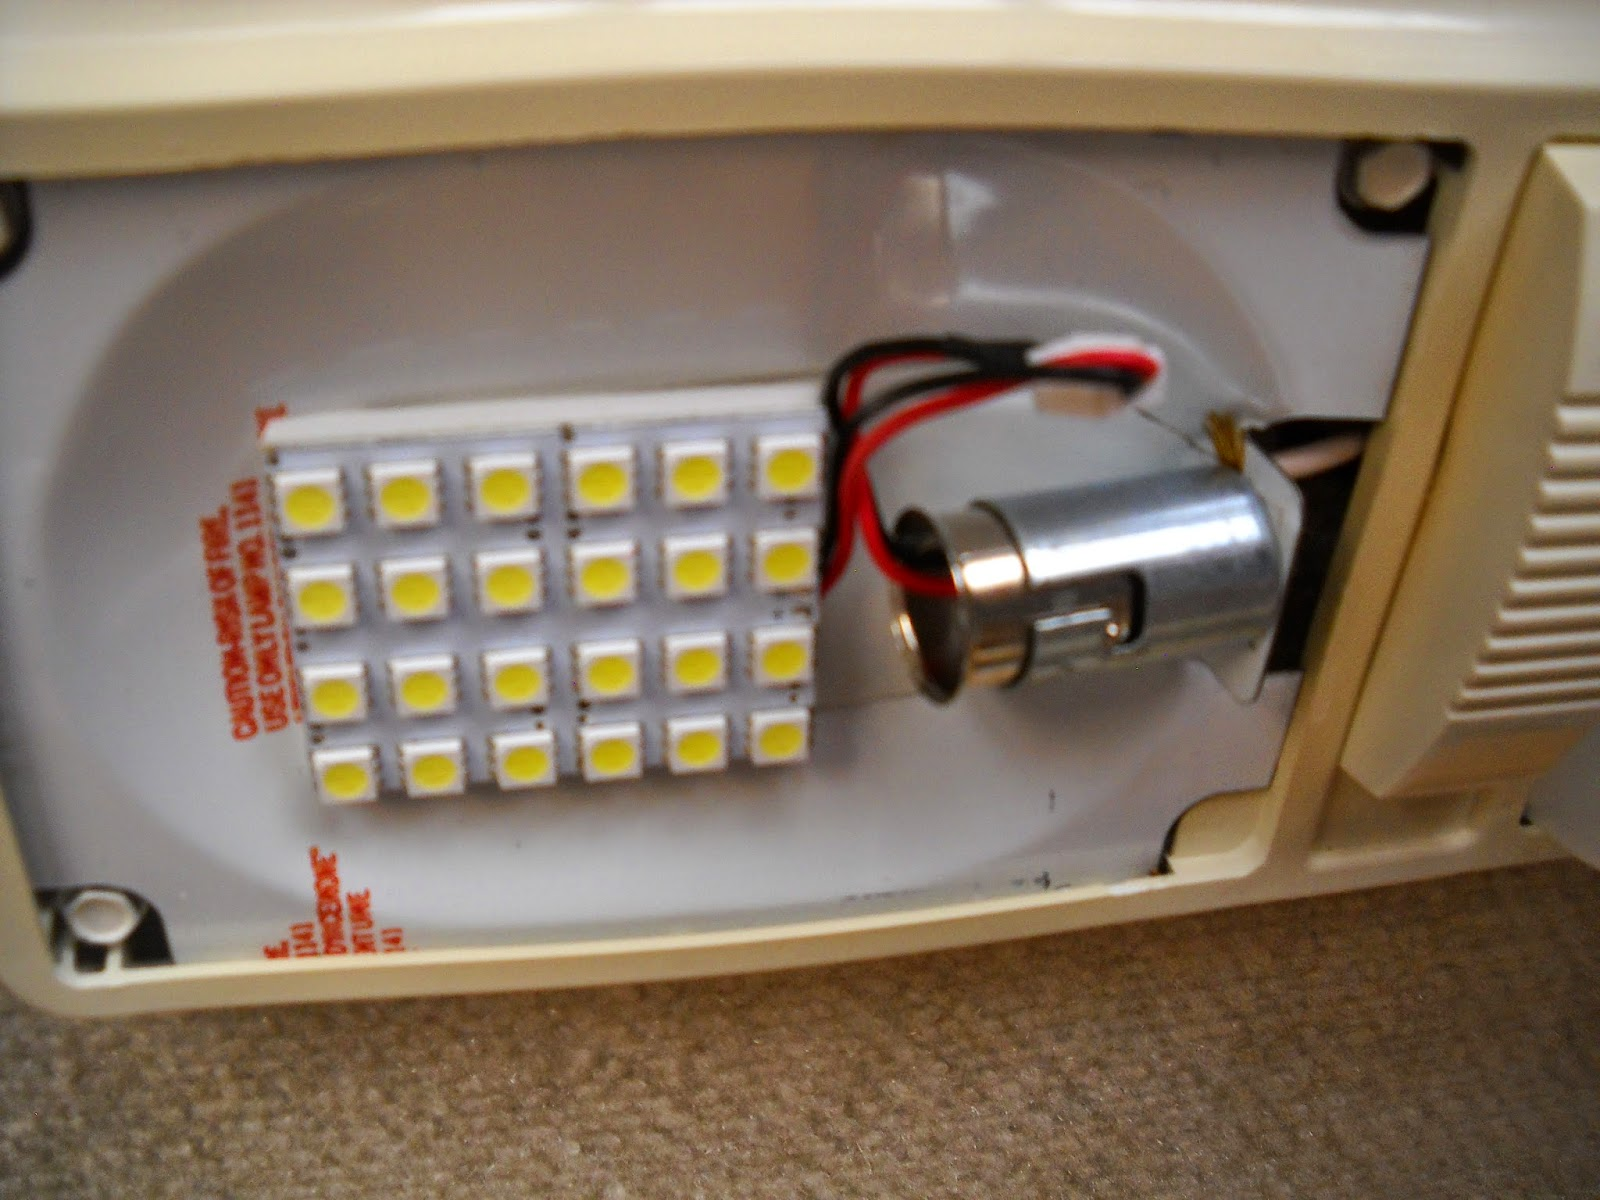 hight resolution of brian and barbara rv ing learning every day led s 1057 light bulb socket wiring